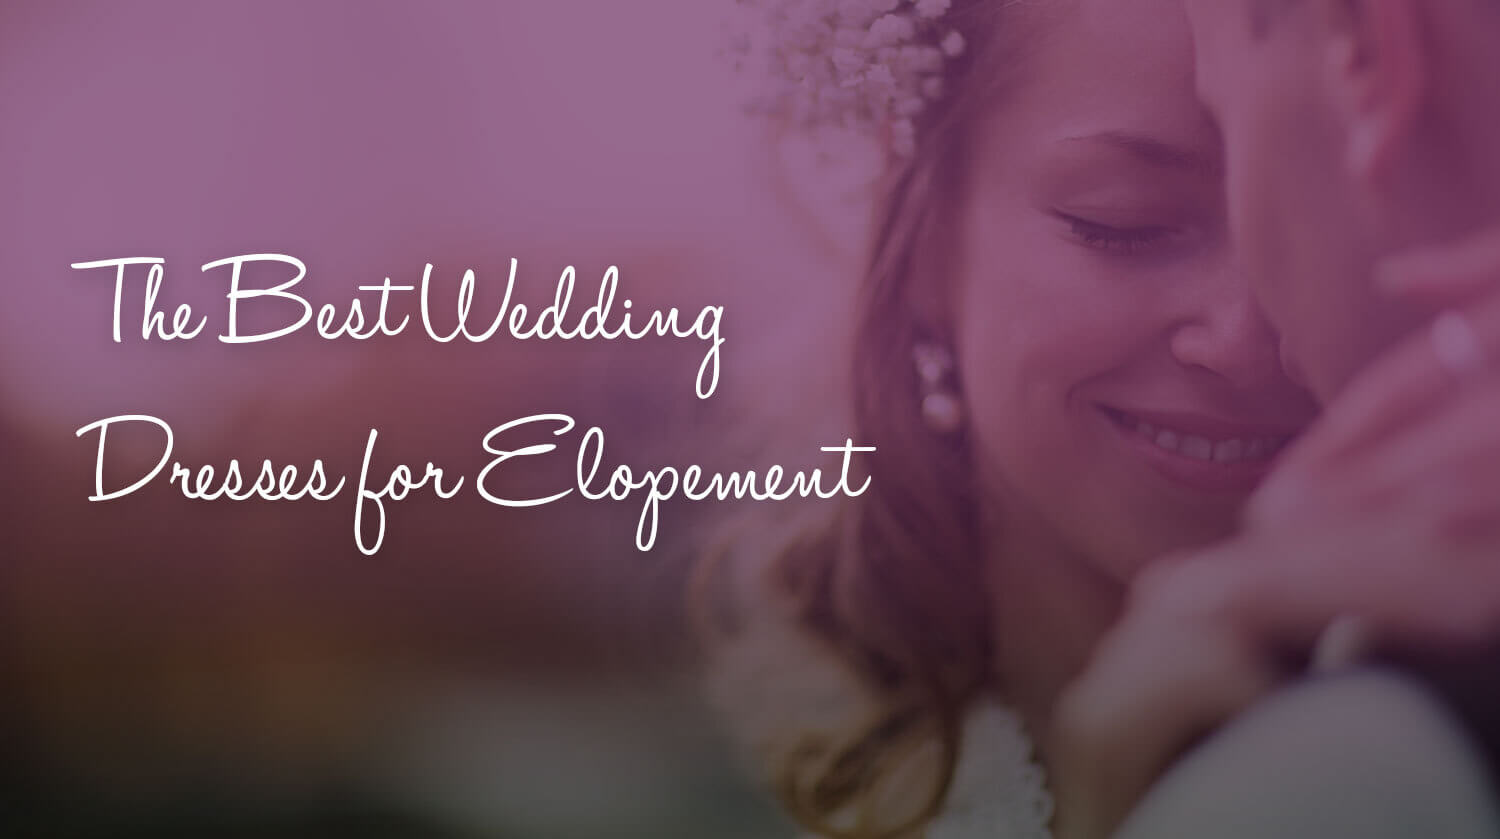 The Best Wedding Dresses for Elopement